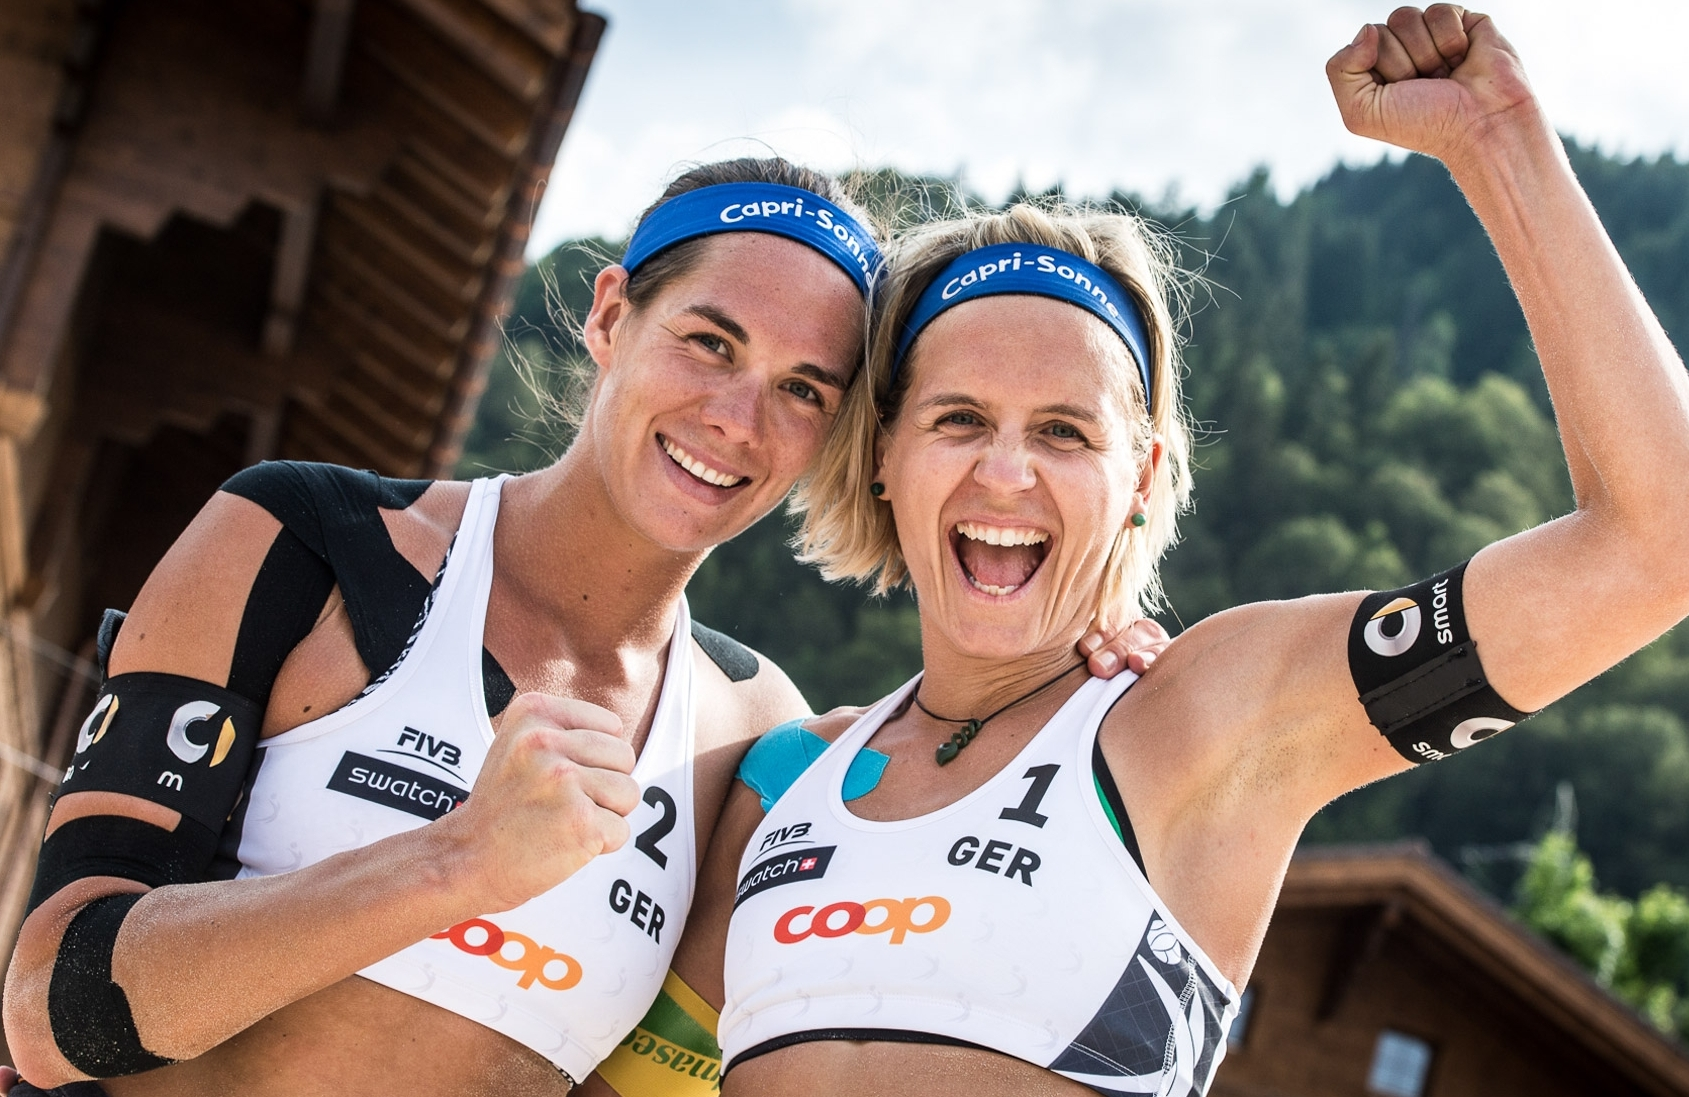 CAPTION: Kira and Laura celebrate in Gstaad. Photocredit: Mihai Stetcu.